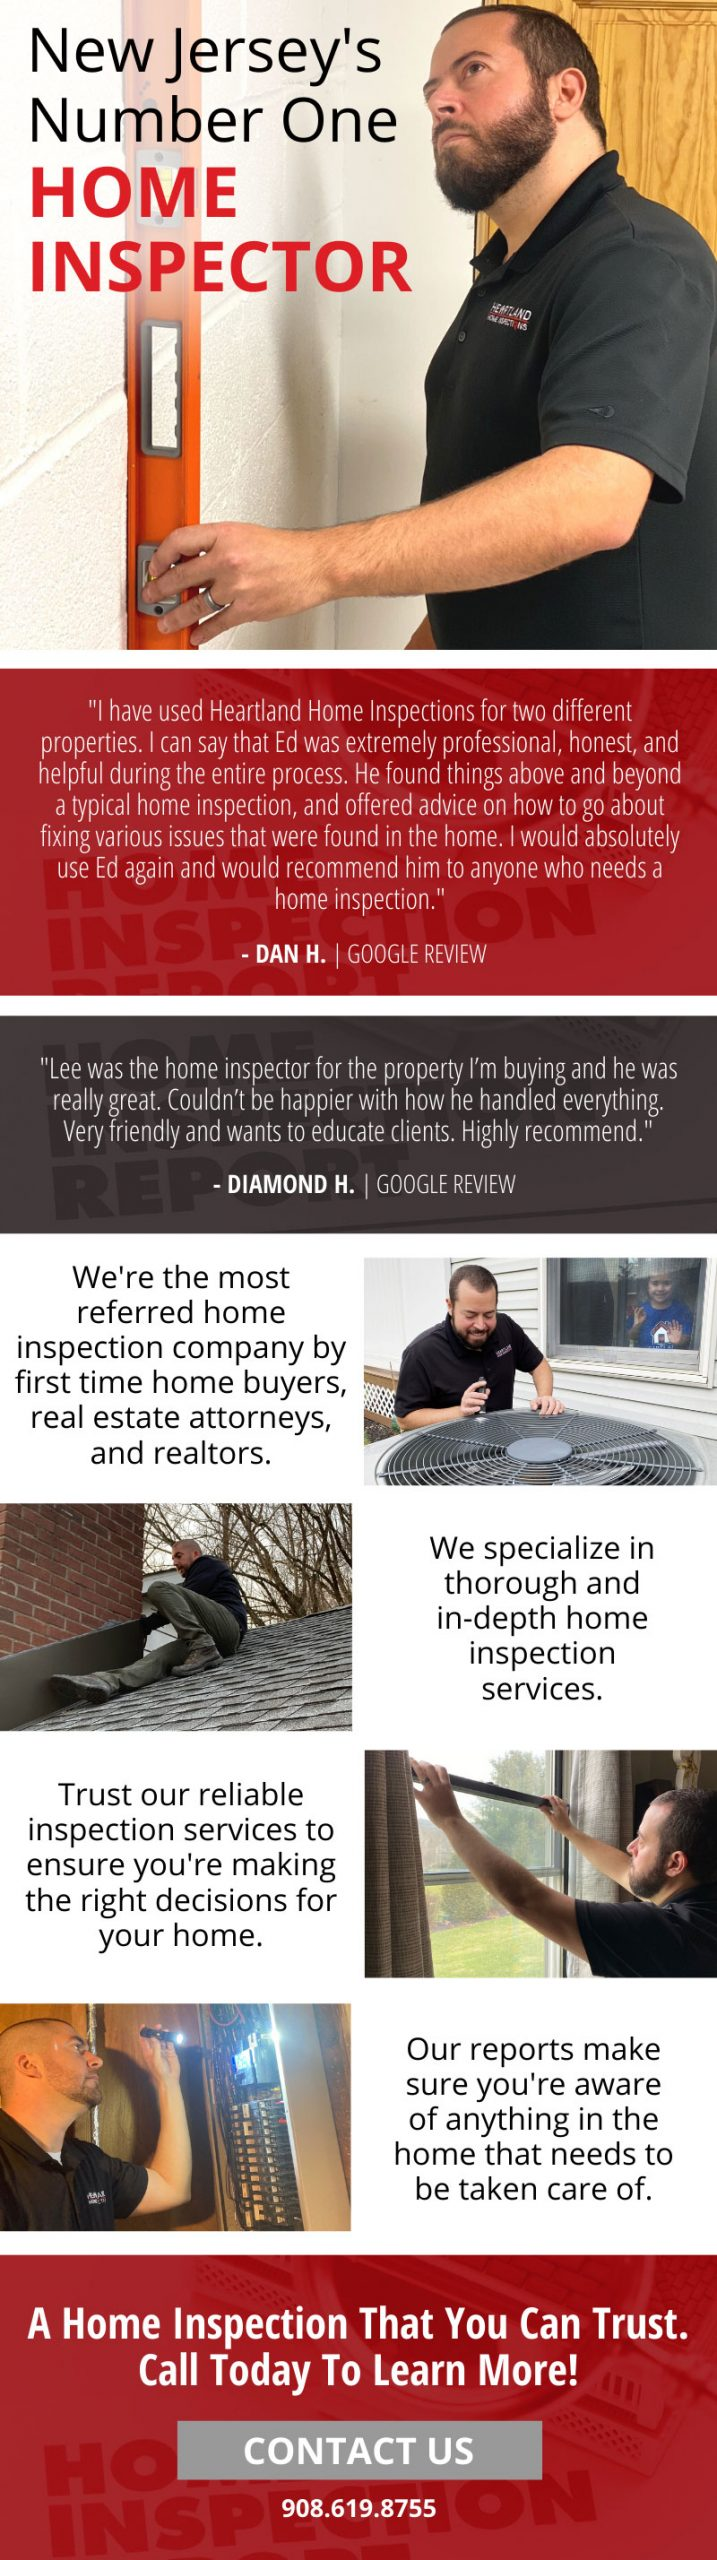 Number One In Home Inspectors! 3